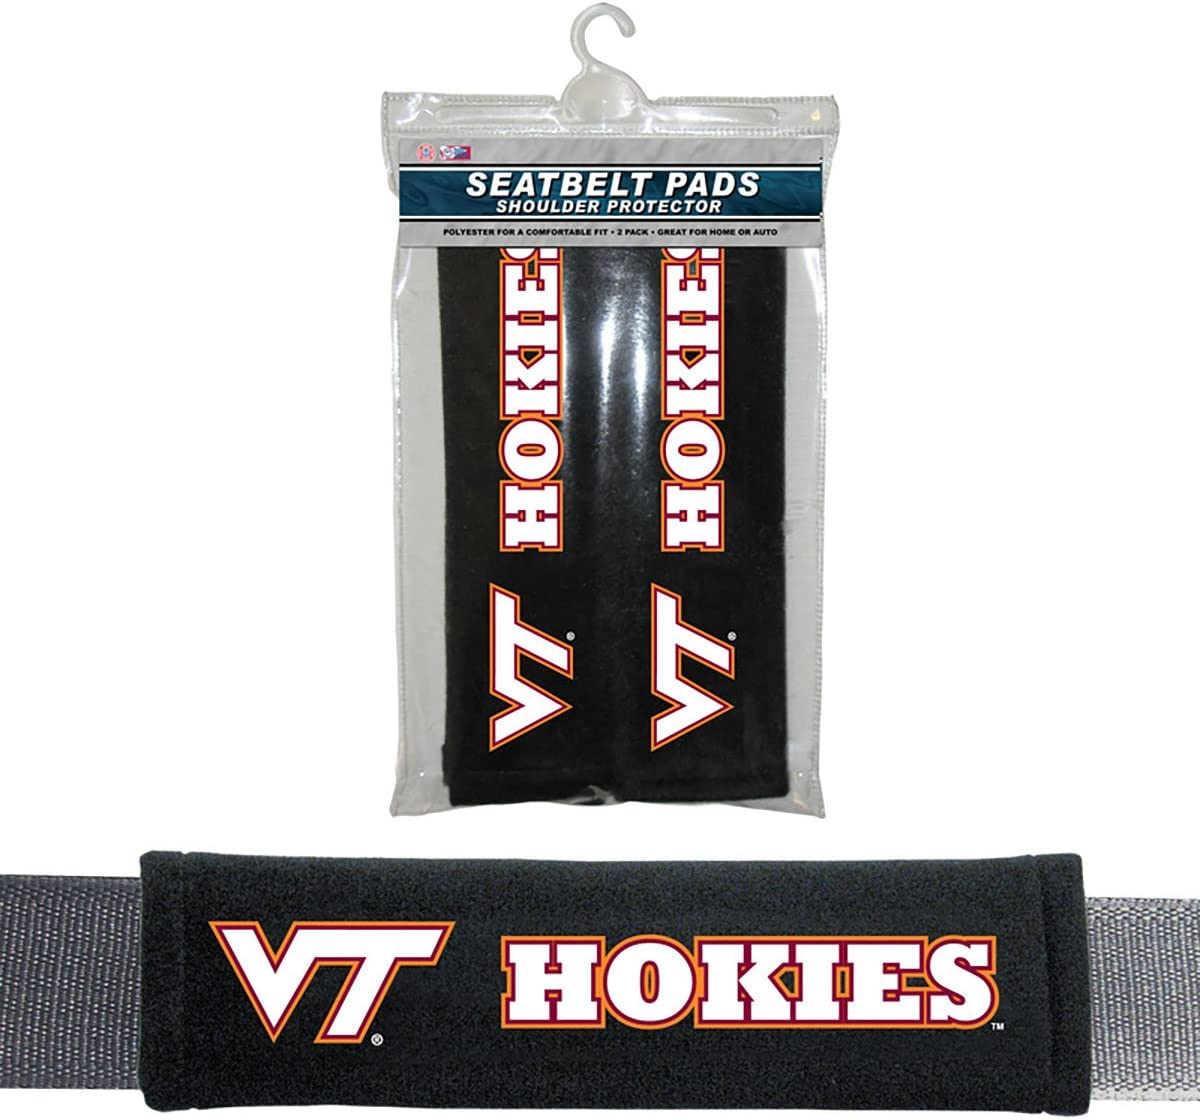 Multi One Size Fremont Die NCAA Virginia Tech Hokies Velour Seat Belt